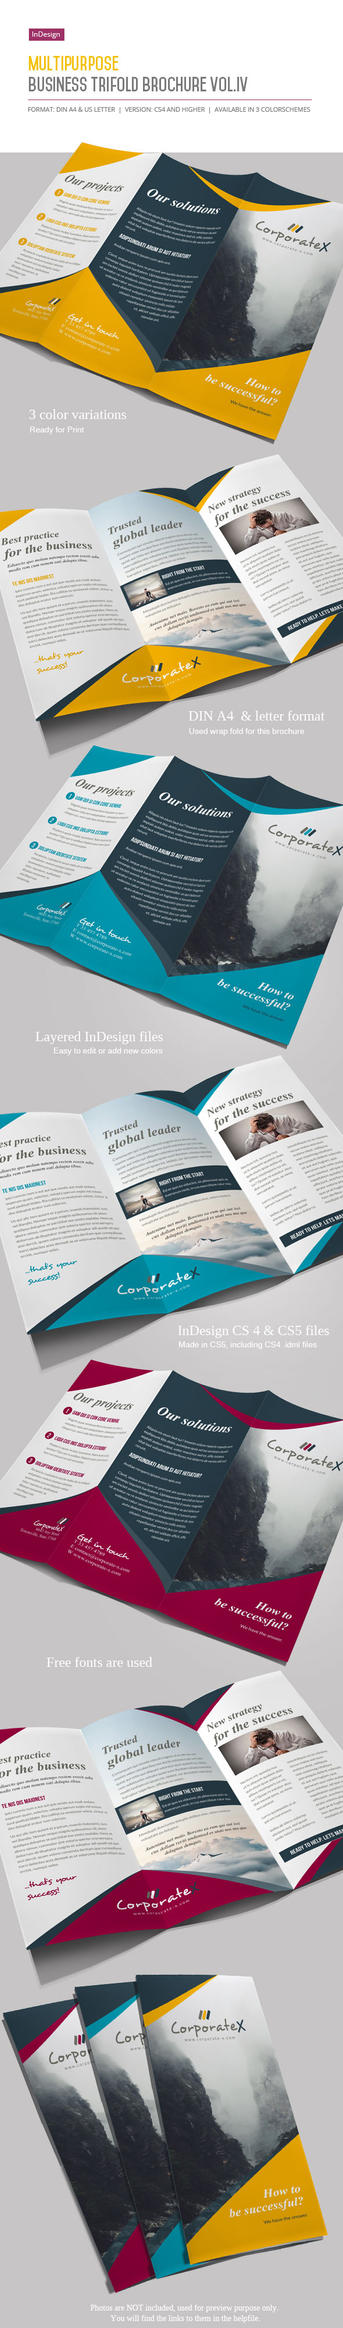 Business Trifold Brochure Vol. IV by imagearea